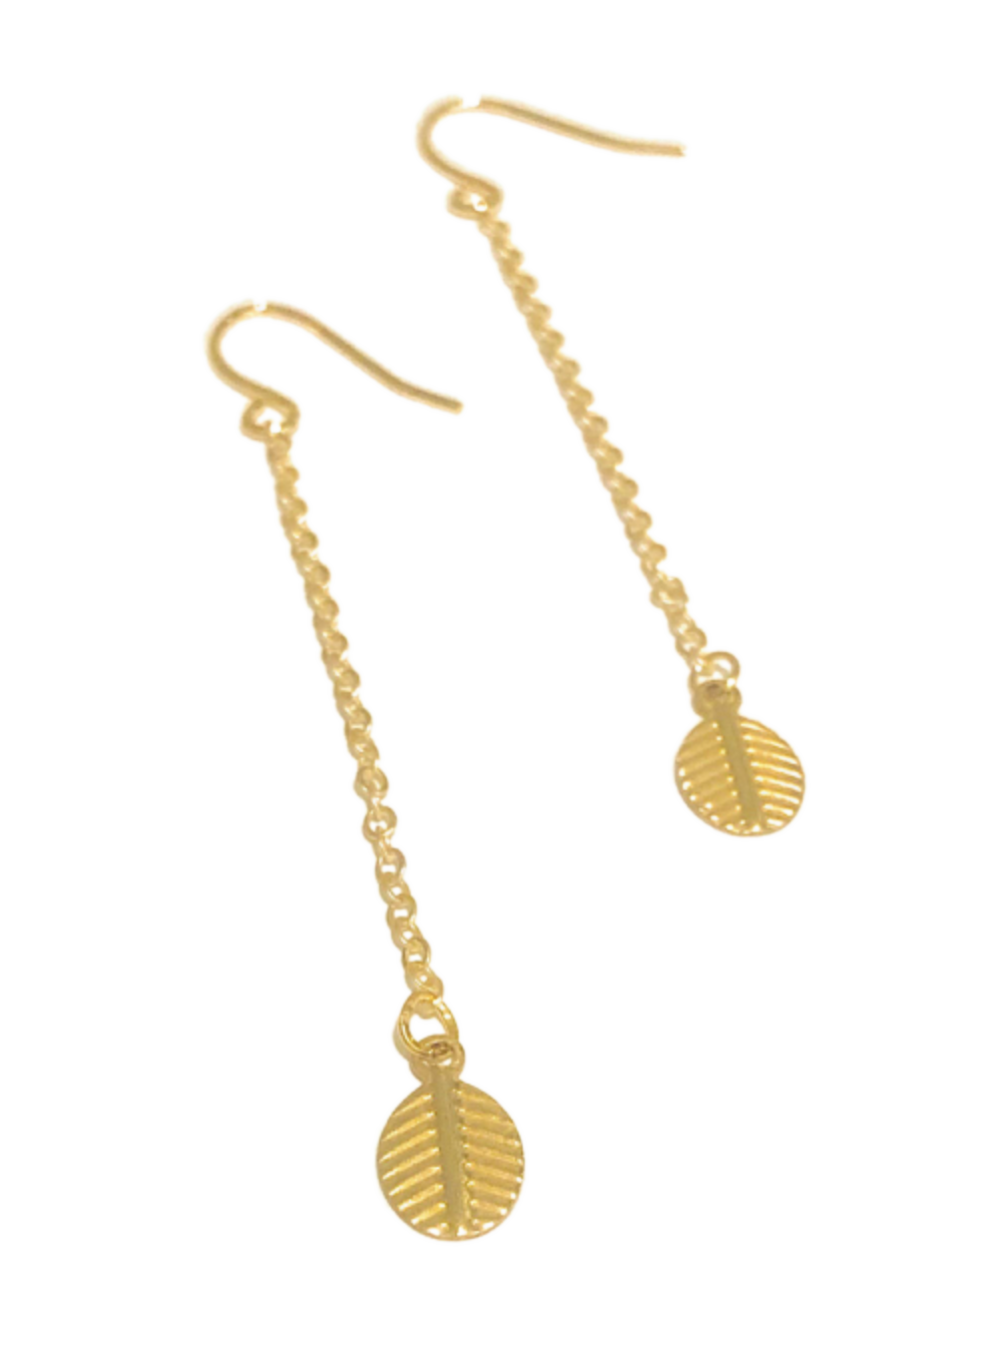 Gold Leaf Chain Earrings Chain